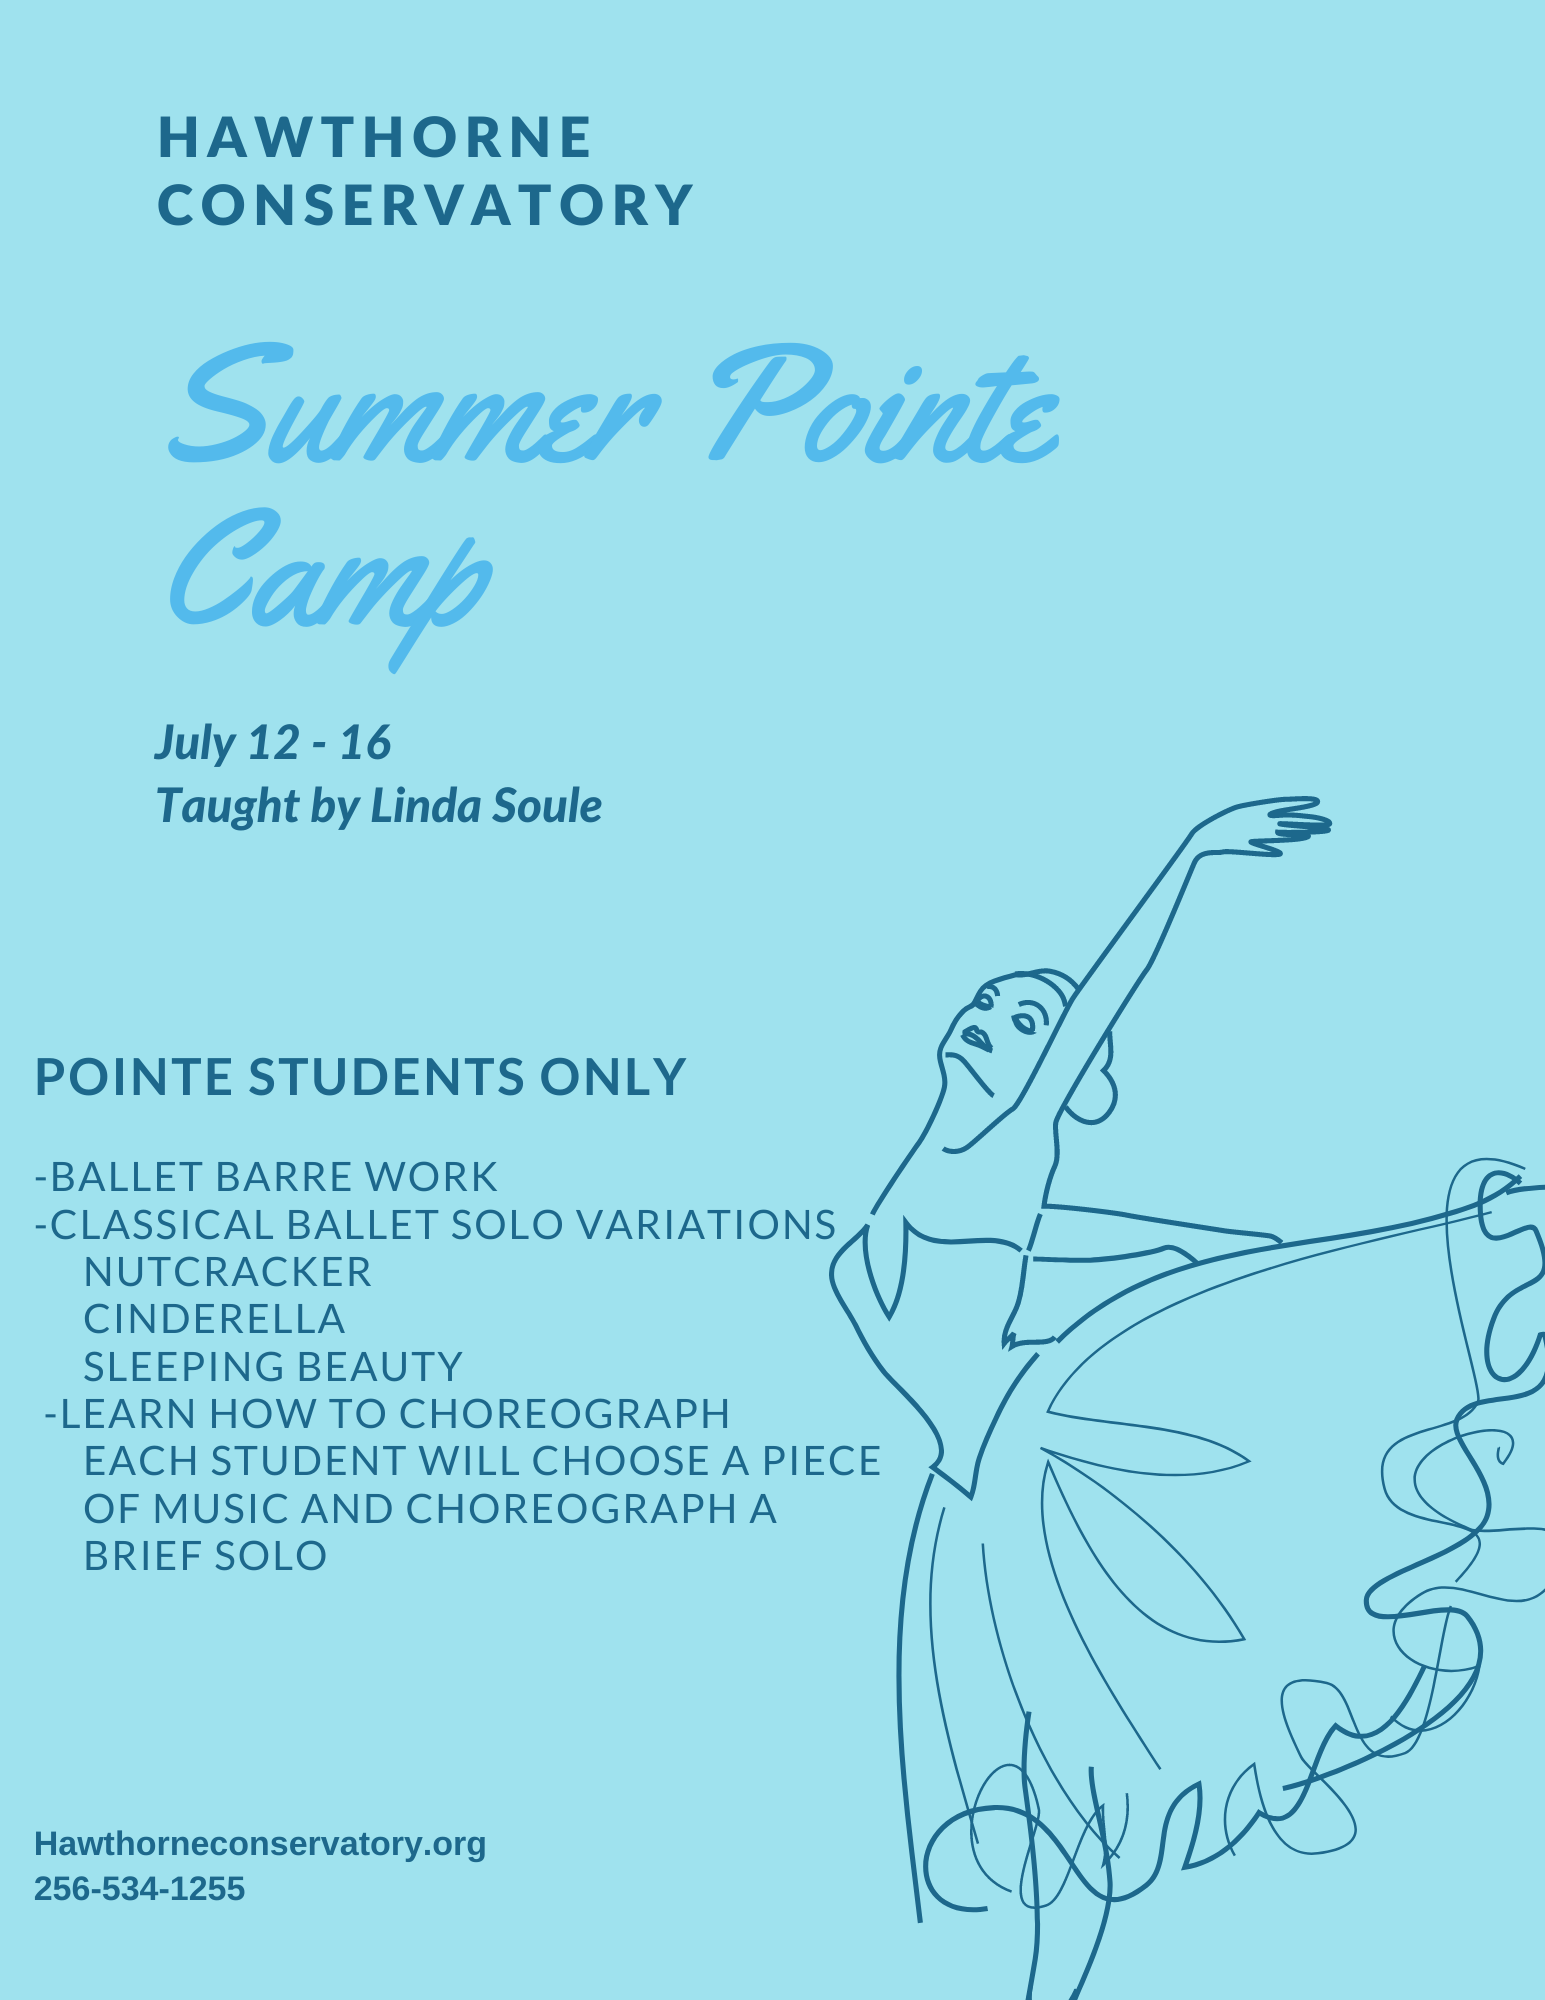 Pointe Students Only! We will be working on ballet barre work while studying Classical Ballet Solo Variations from Nutcracker, Cinderella and Sleeping Beauty. Learn how to choreograph! Each student will choose a piece of music and choreograph a brief solo.